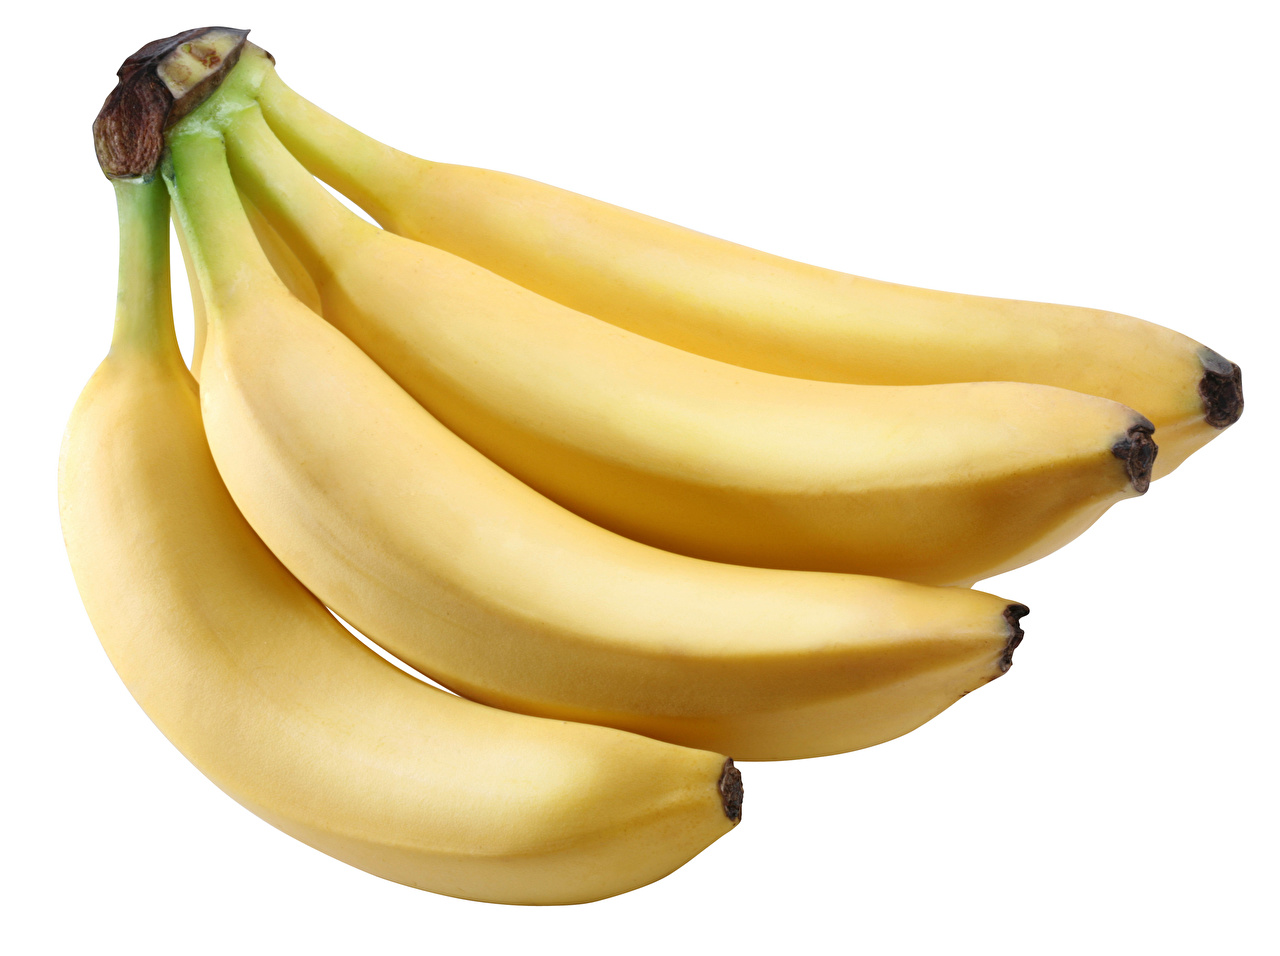 Picture Bananas Food Closeup White background